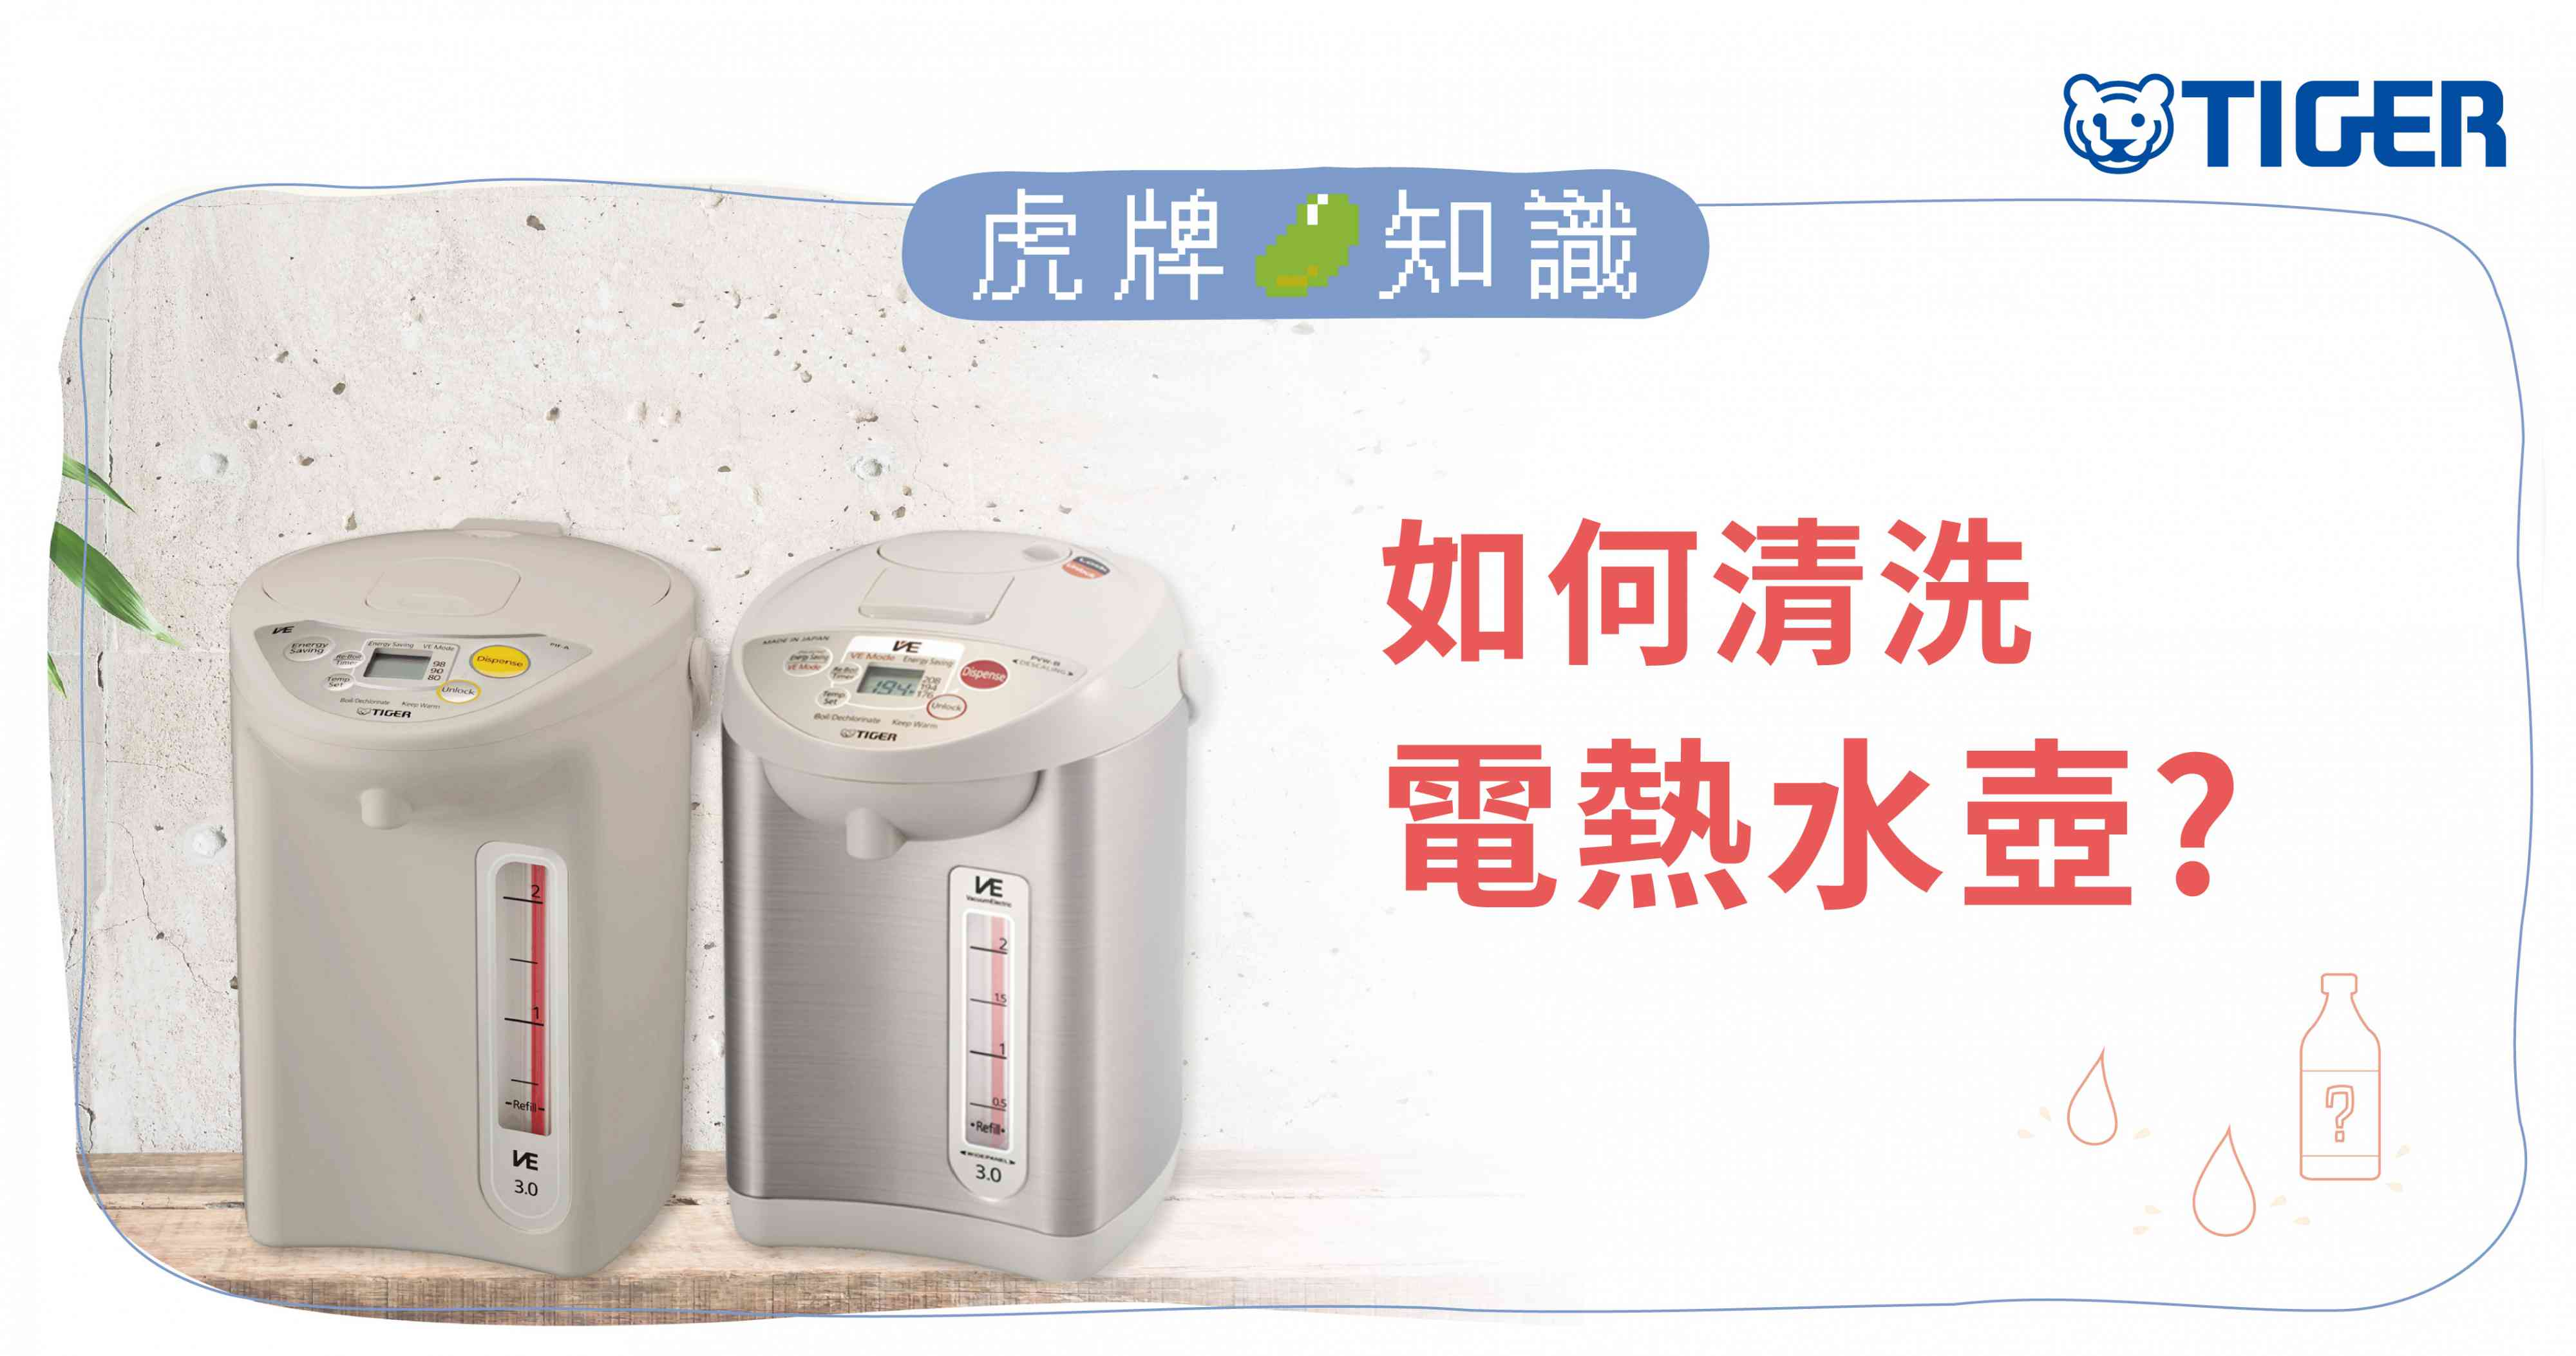 tiger-trivia-how-to-clean-a-new-water-warmer-ch-2.jpg (268 KB)